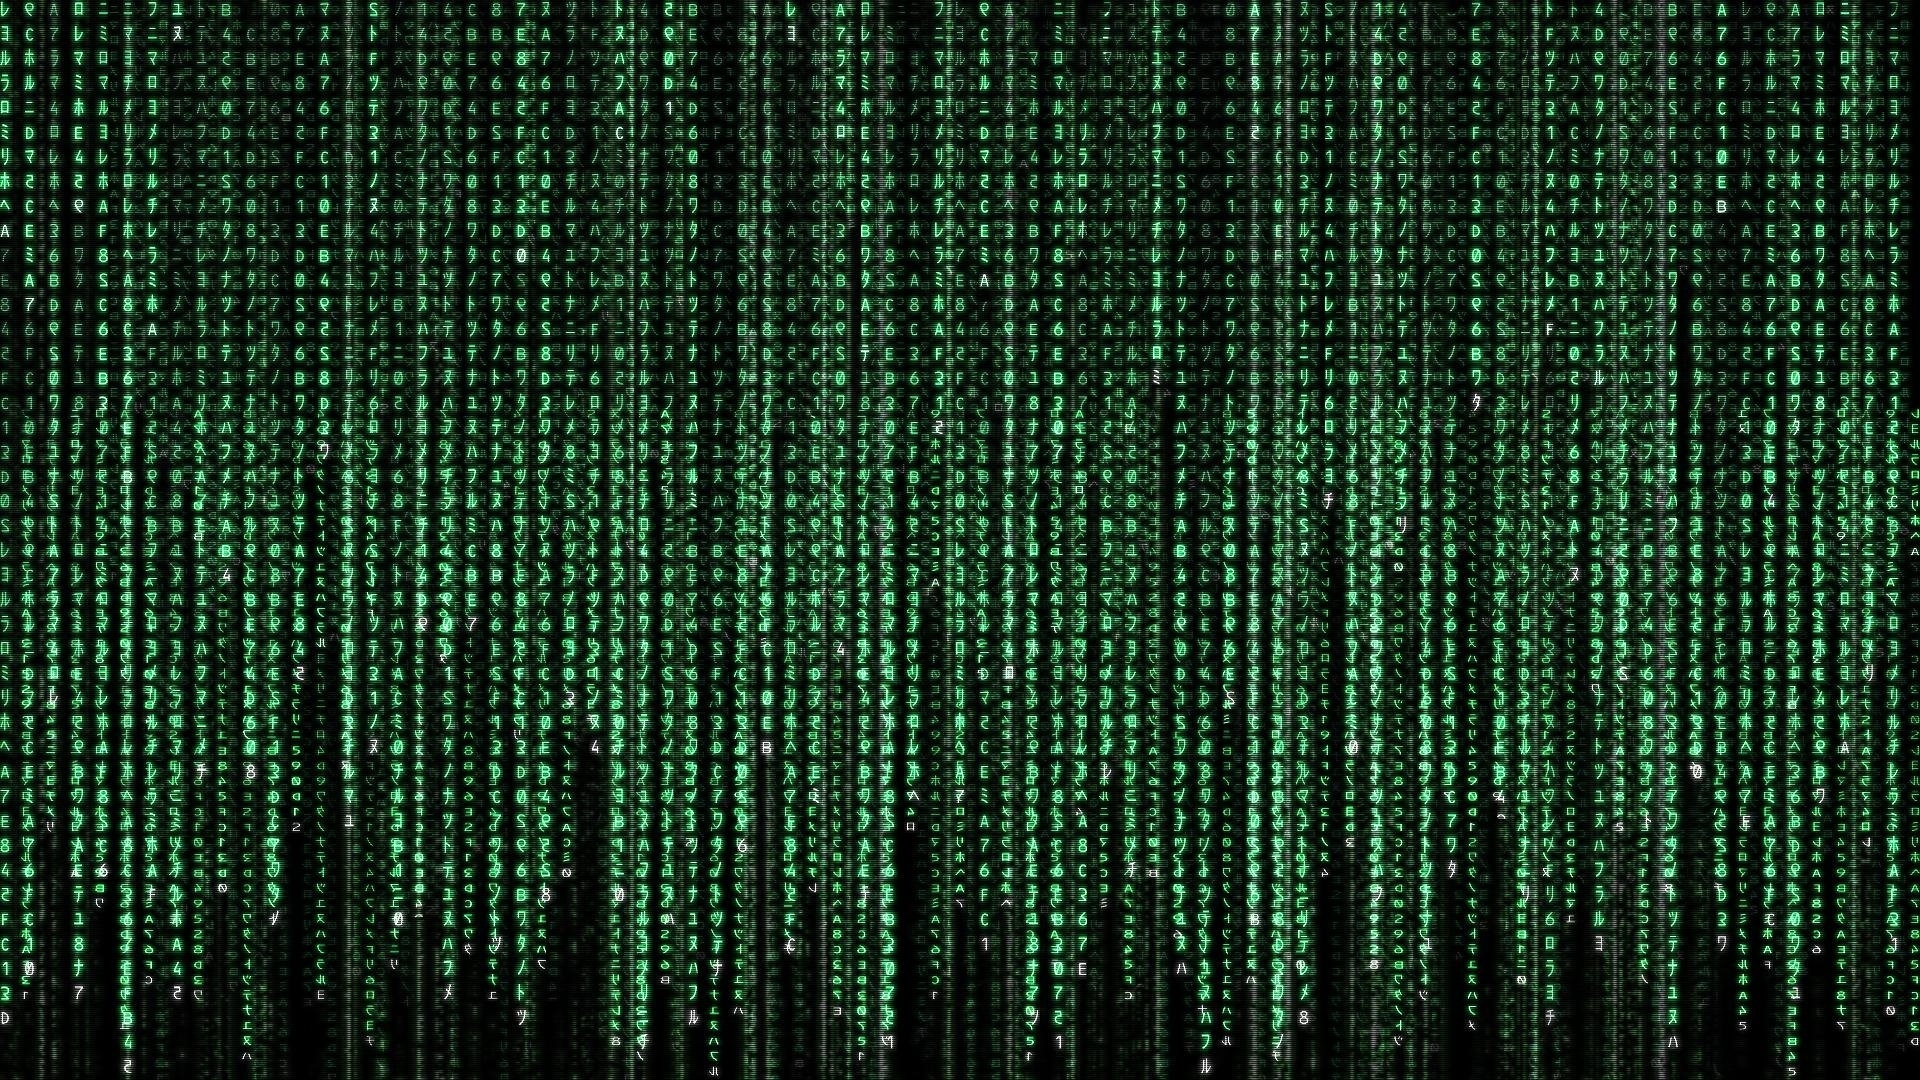 30 the matrix hd wallpapers | background images - wallpaper abyss